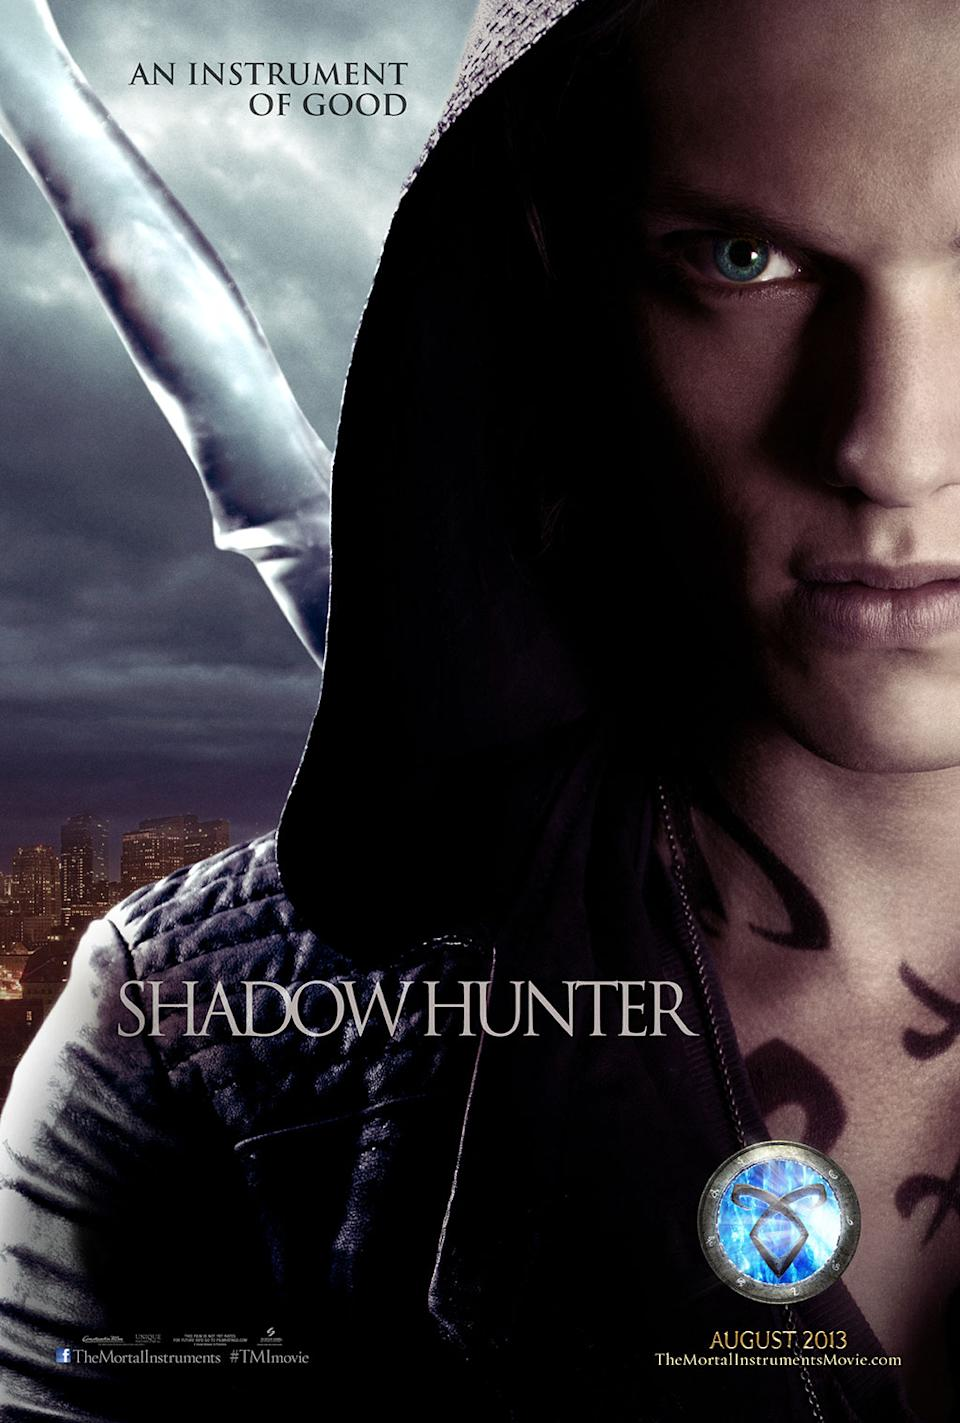 """Jamie Campbell Bower as Jace Wayland in Screen Gems' """"The Mortal Instruments: City of Bones"""" - 2013<br><br> <a href=""""http://l.yimg.com/os/251/2013/03/31/TMI-SPECIAL-ONLINE-VERSION-V4-JAMIE-jpg_000013.jpg"""" rel=""""nofollow noopener"""" target=""""_blank"""" data-ylk=""""slk:View full size >>"""" class=""""link rapid-noclick-resp"""">View full size >></a>"""